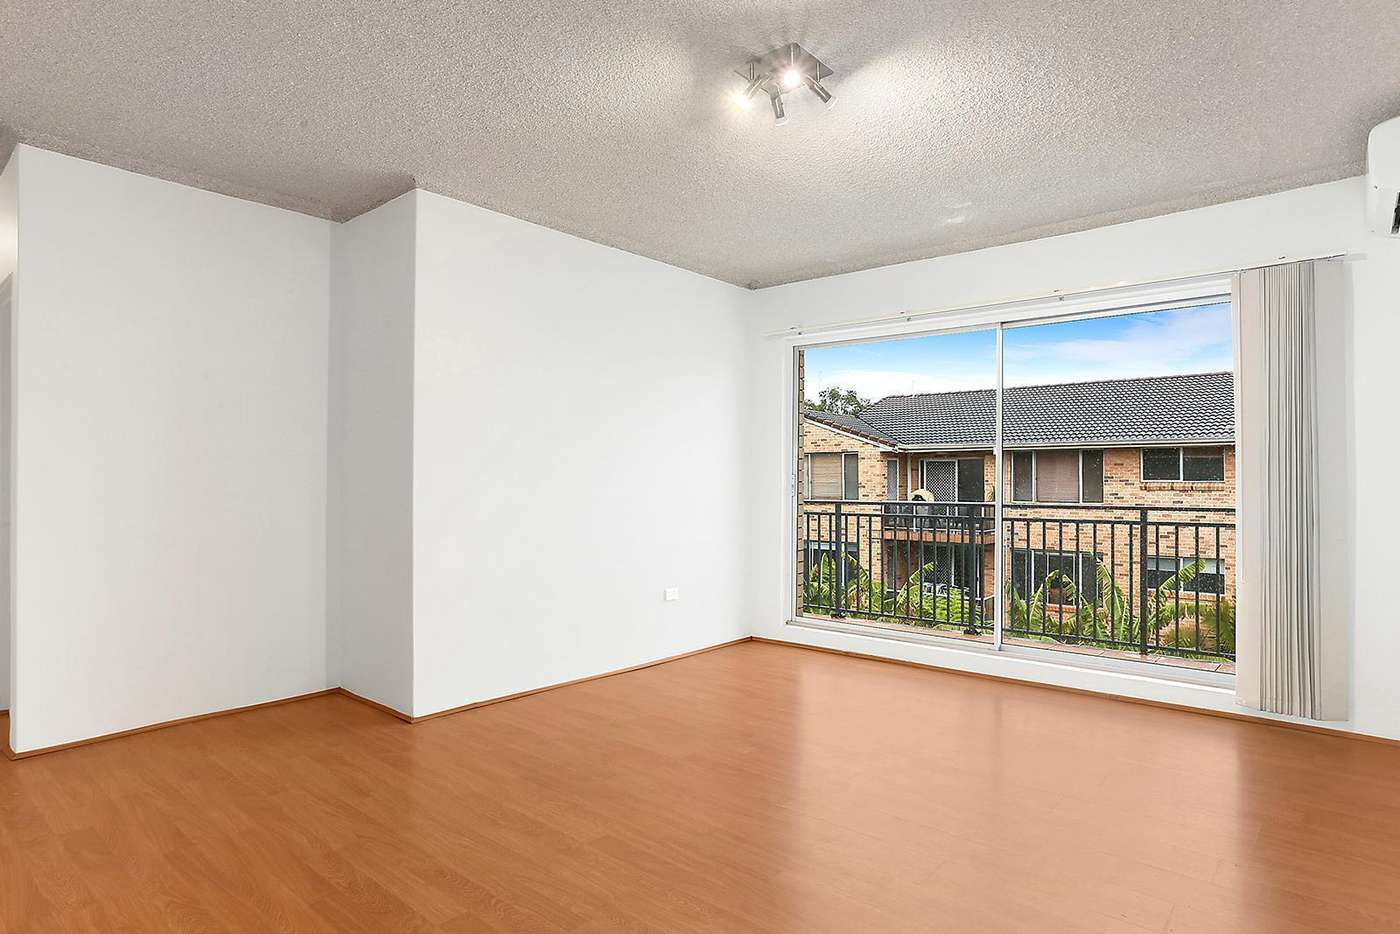 Main view of Homely apartment listing, 15/72 Kurnell Road, Cronulla NSW 2230